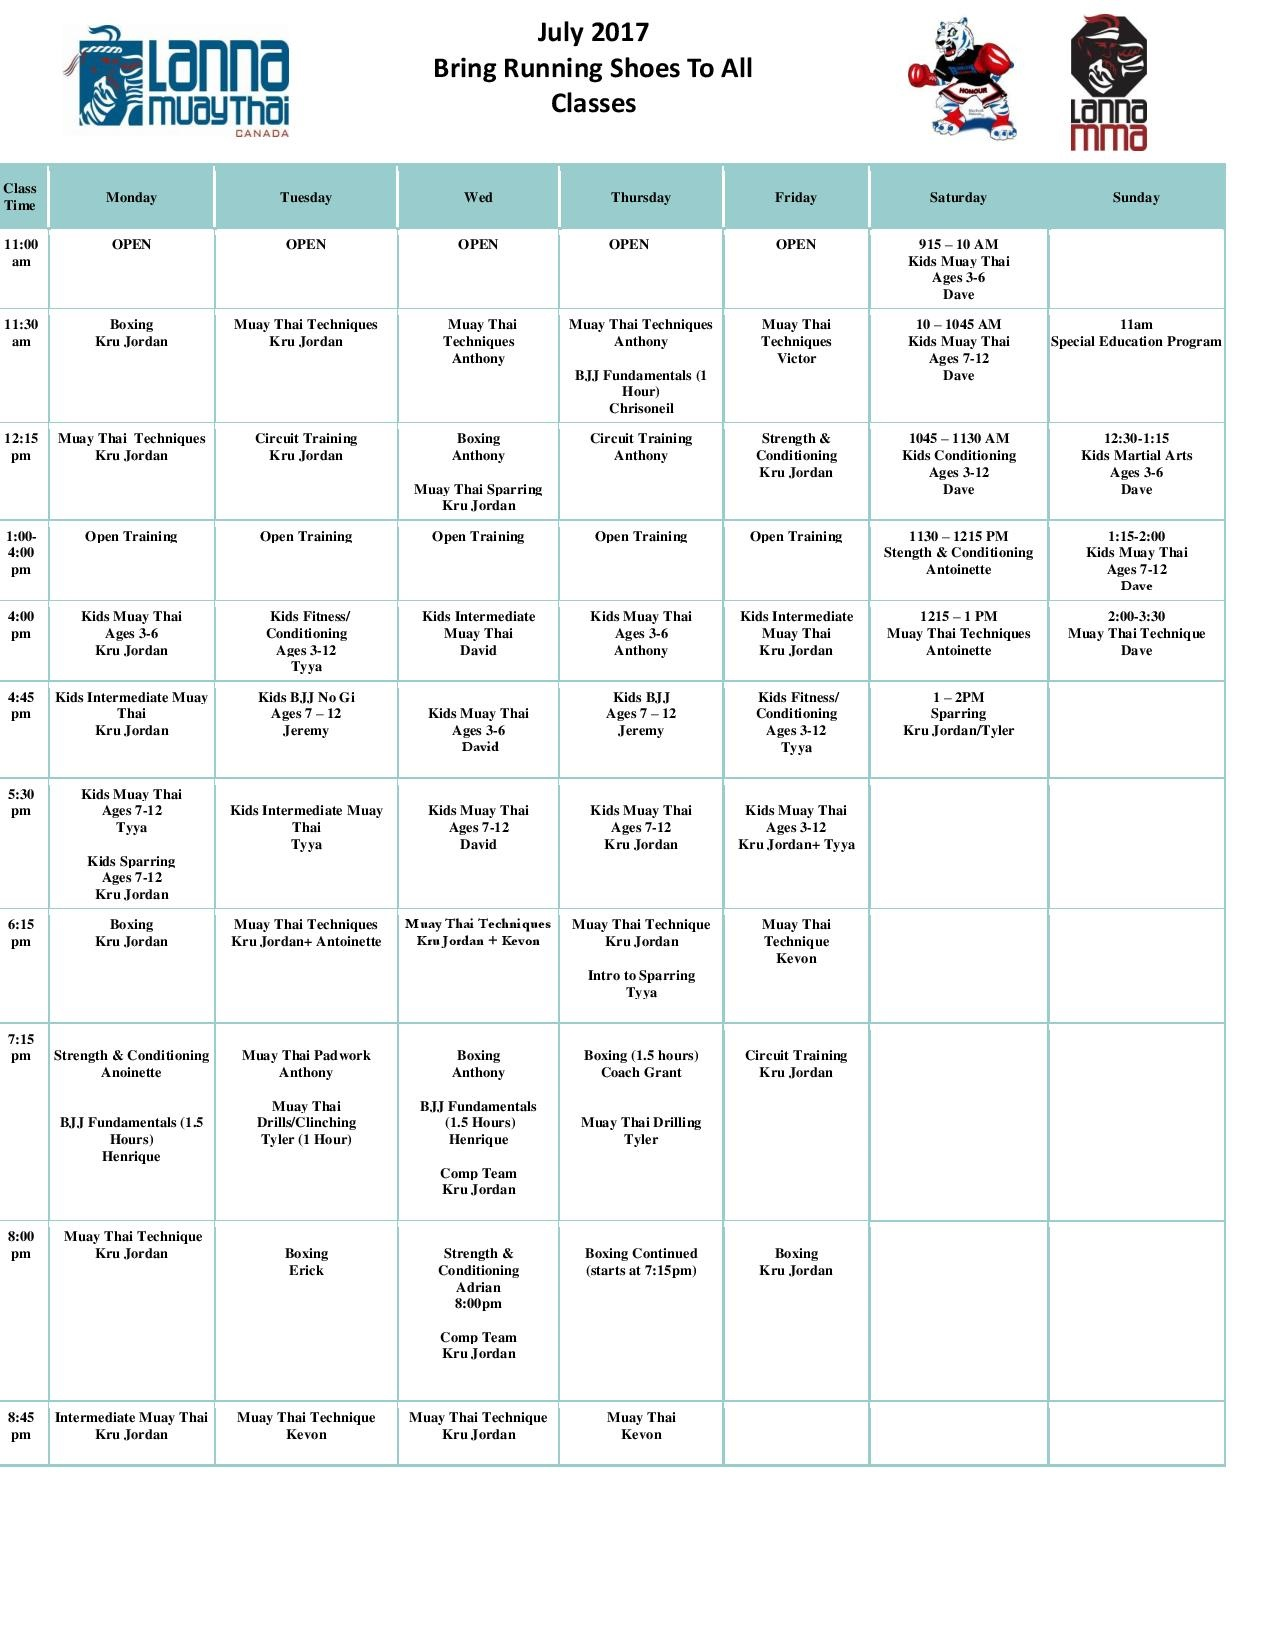 Muay Thai Kickboxing, Boxing, MMA, BJJ, Kids Martial Arts, & Strength and Conditioing  July schedule for Lanna MMA